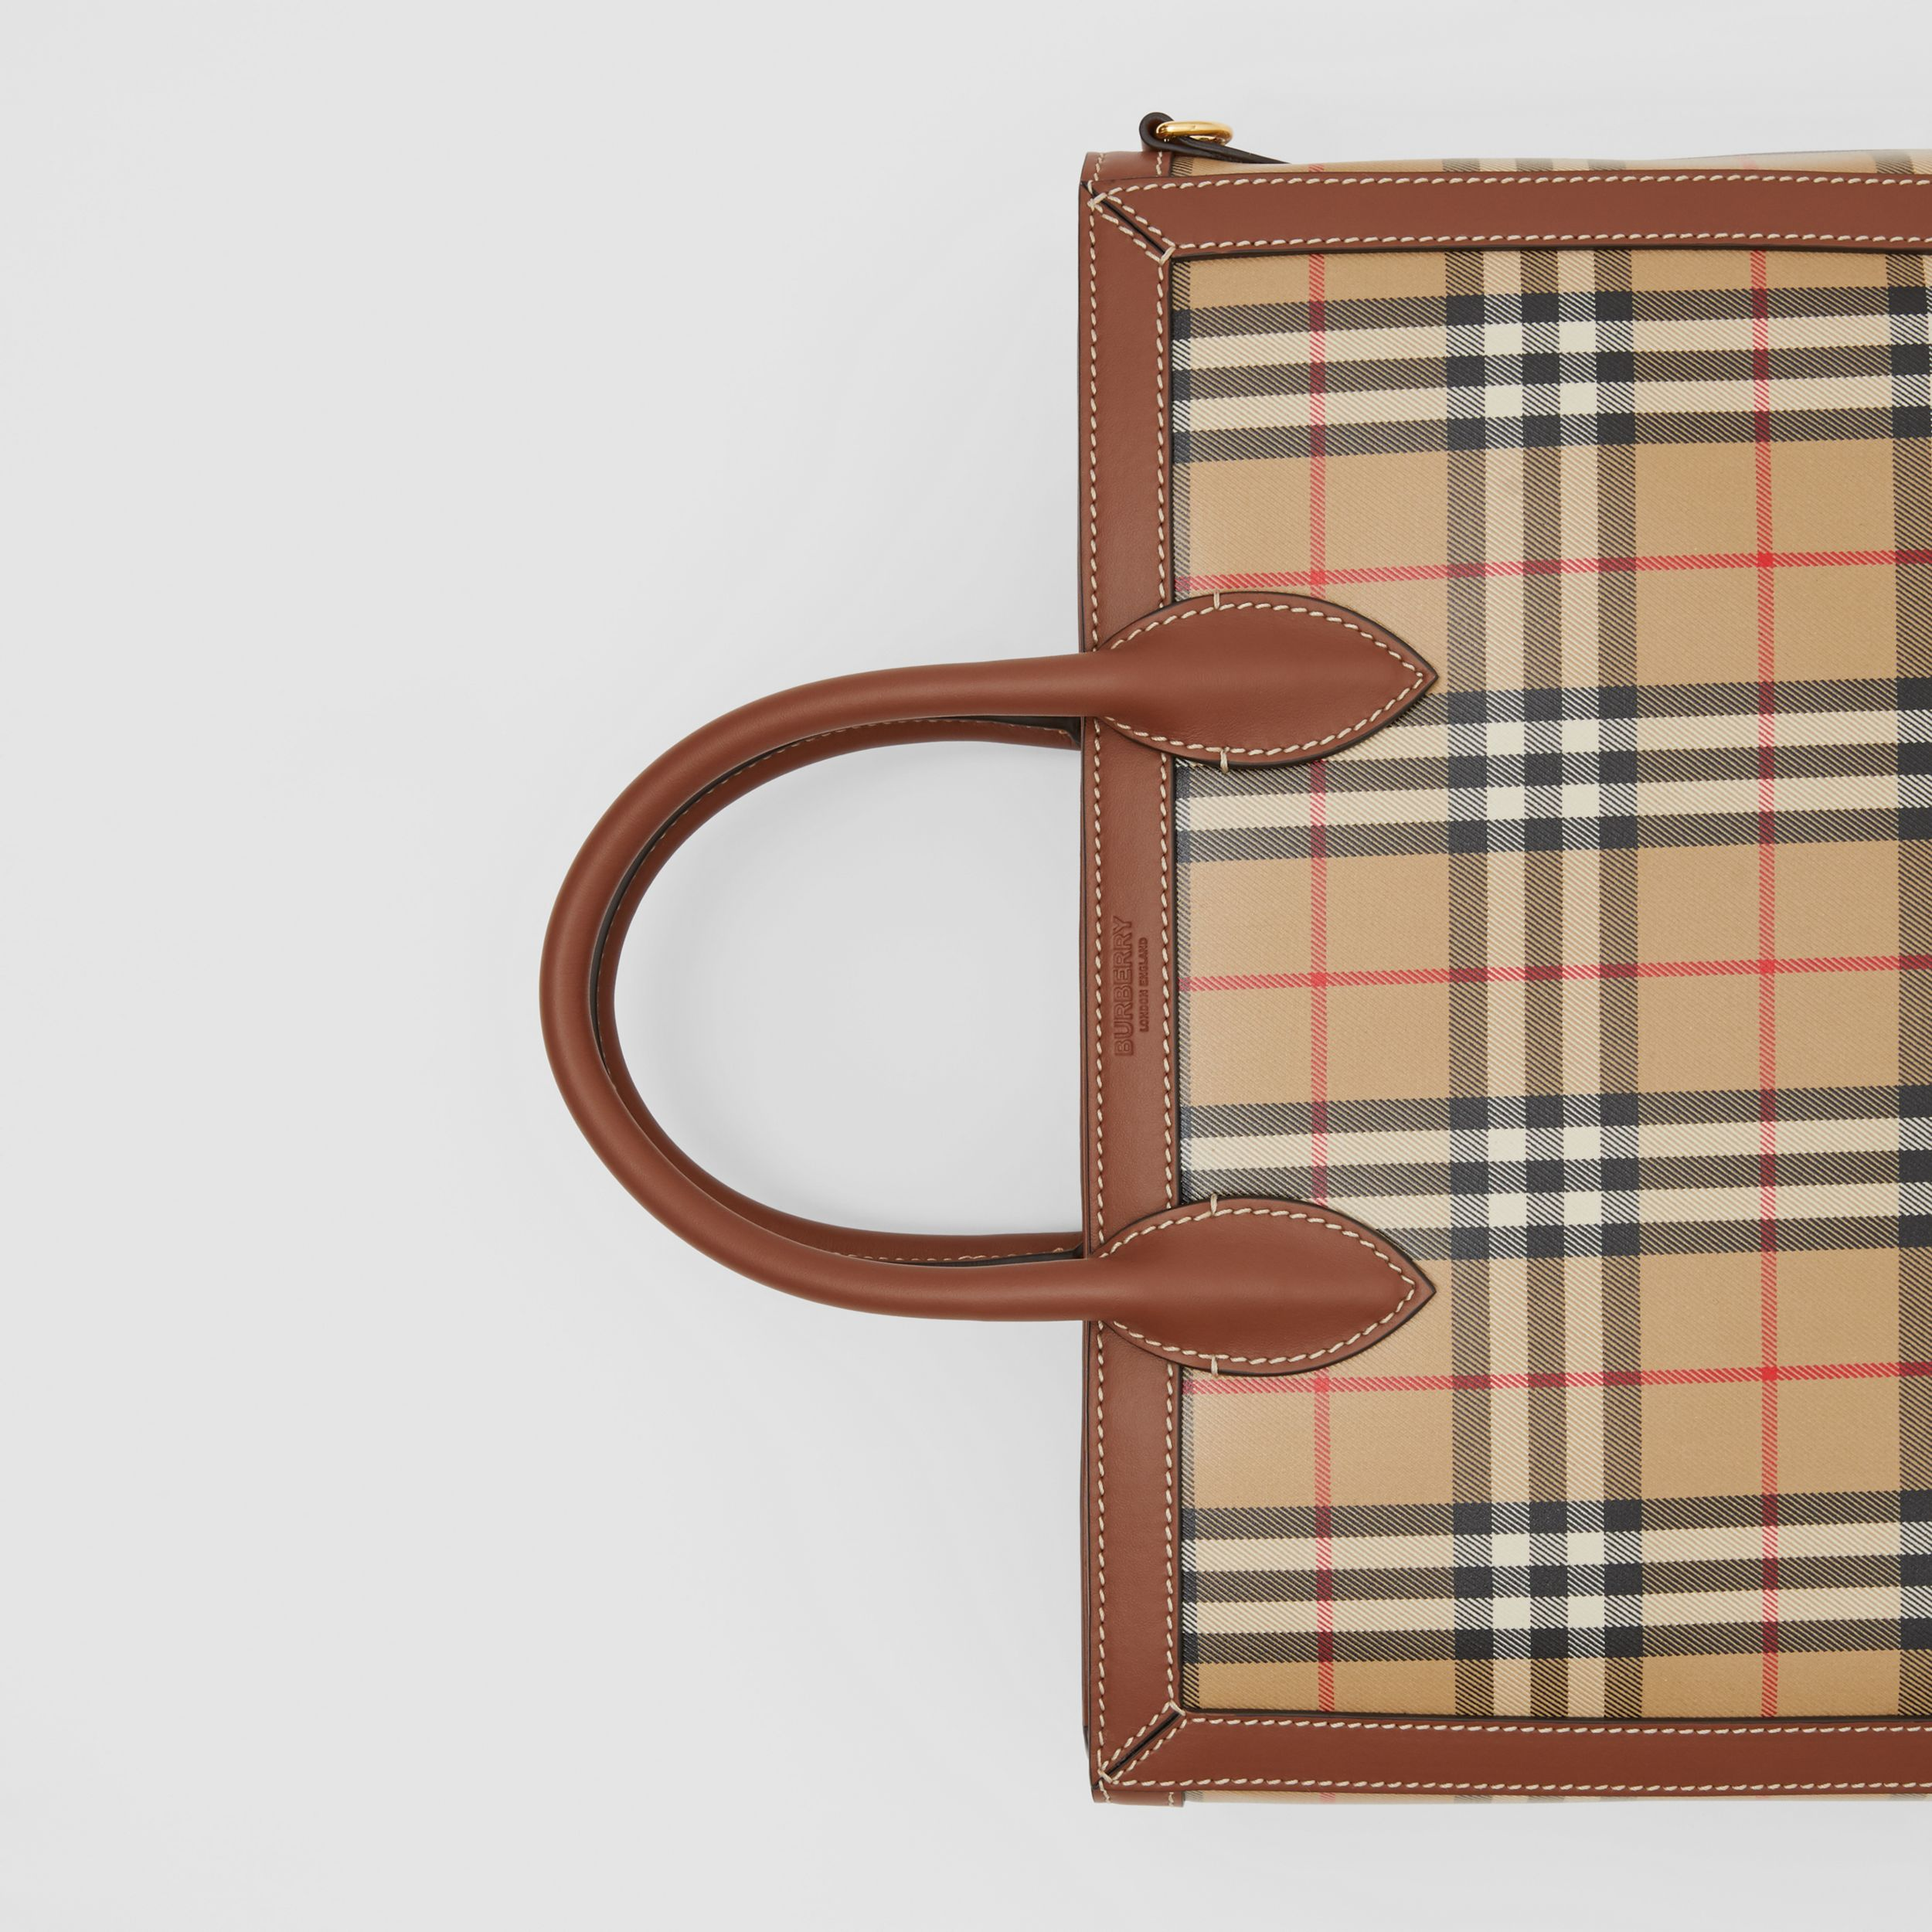 Medium Vintage Check Coated Canvas Tote in Archive Beige - Men | Burberry Singapore - 2